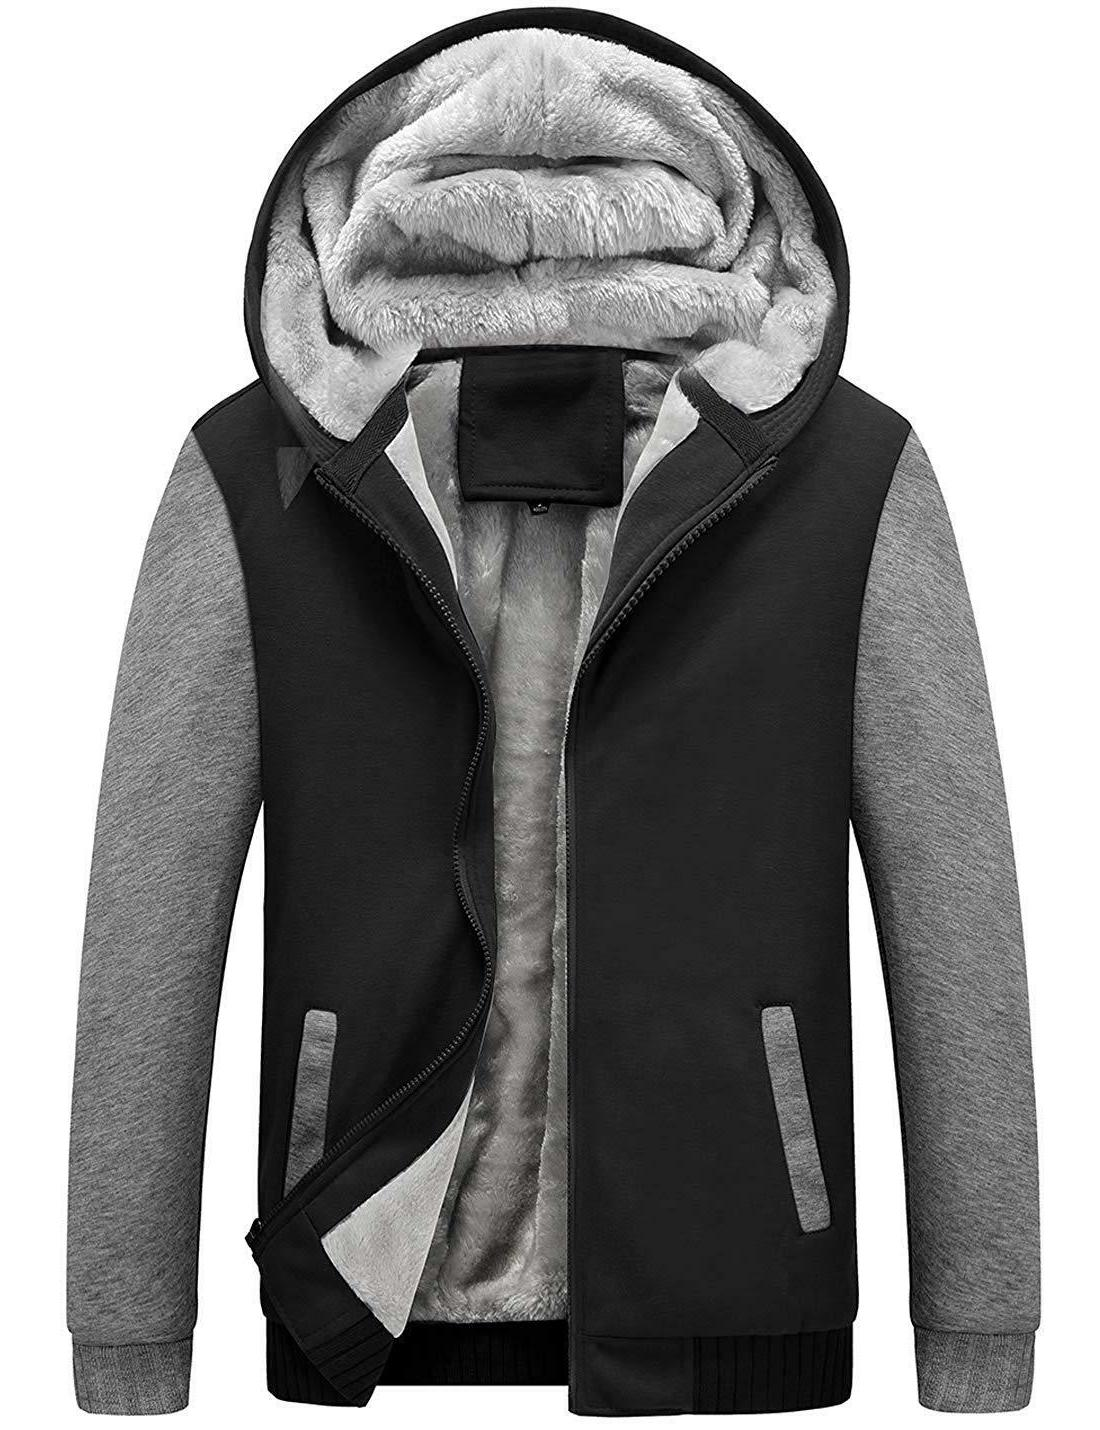 Yeokou Winter Thicken Fleece Sherpa Zipper Hoodie